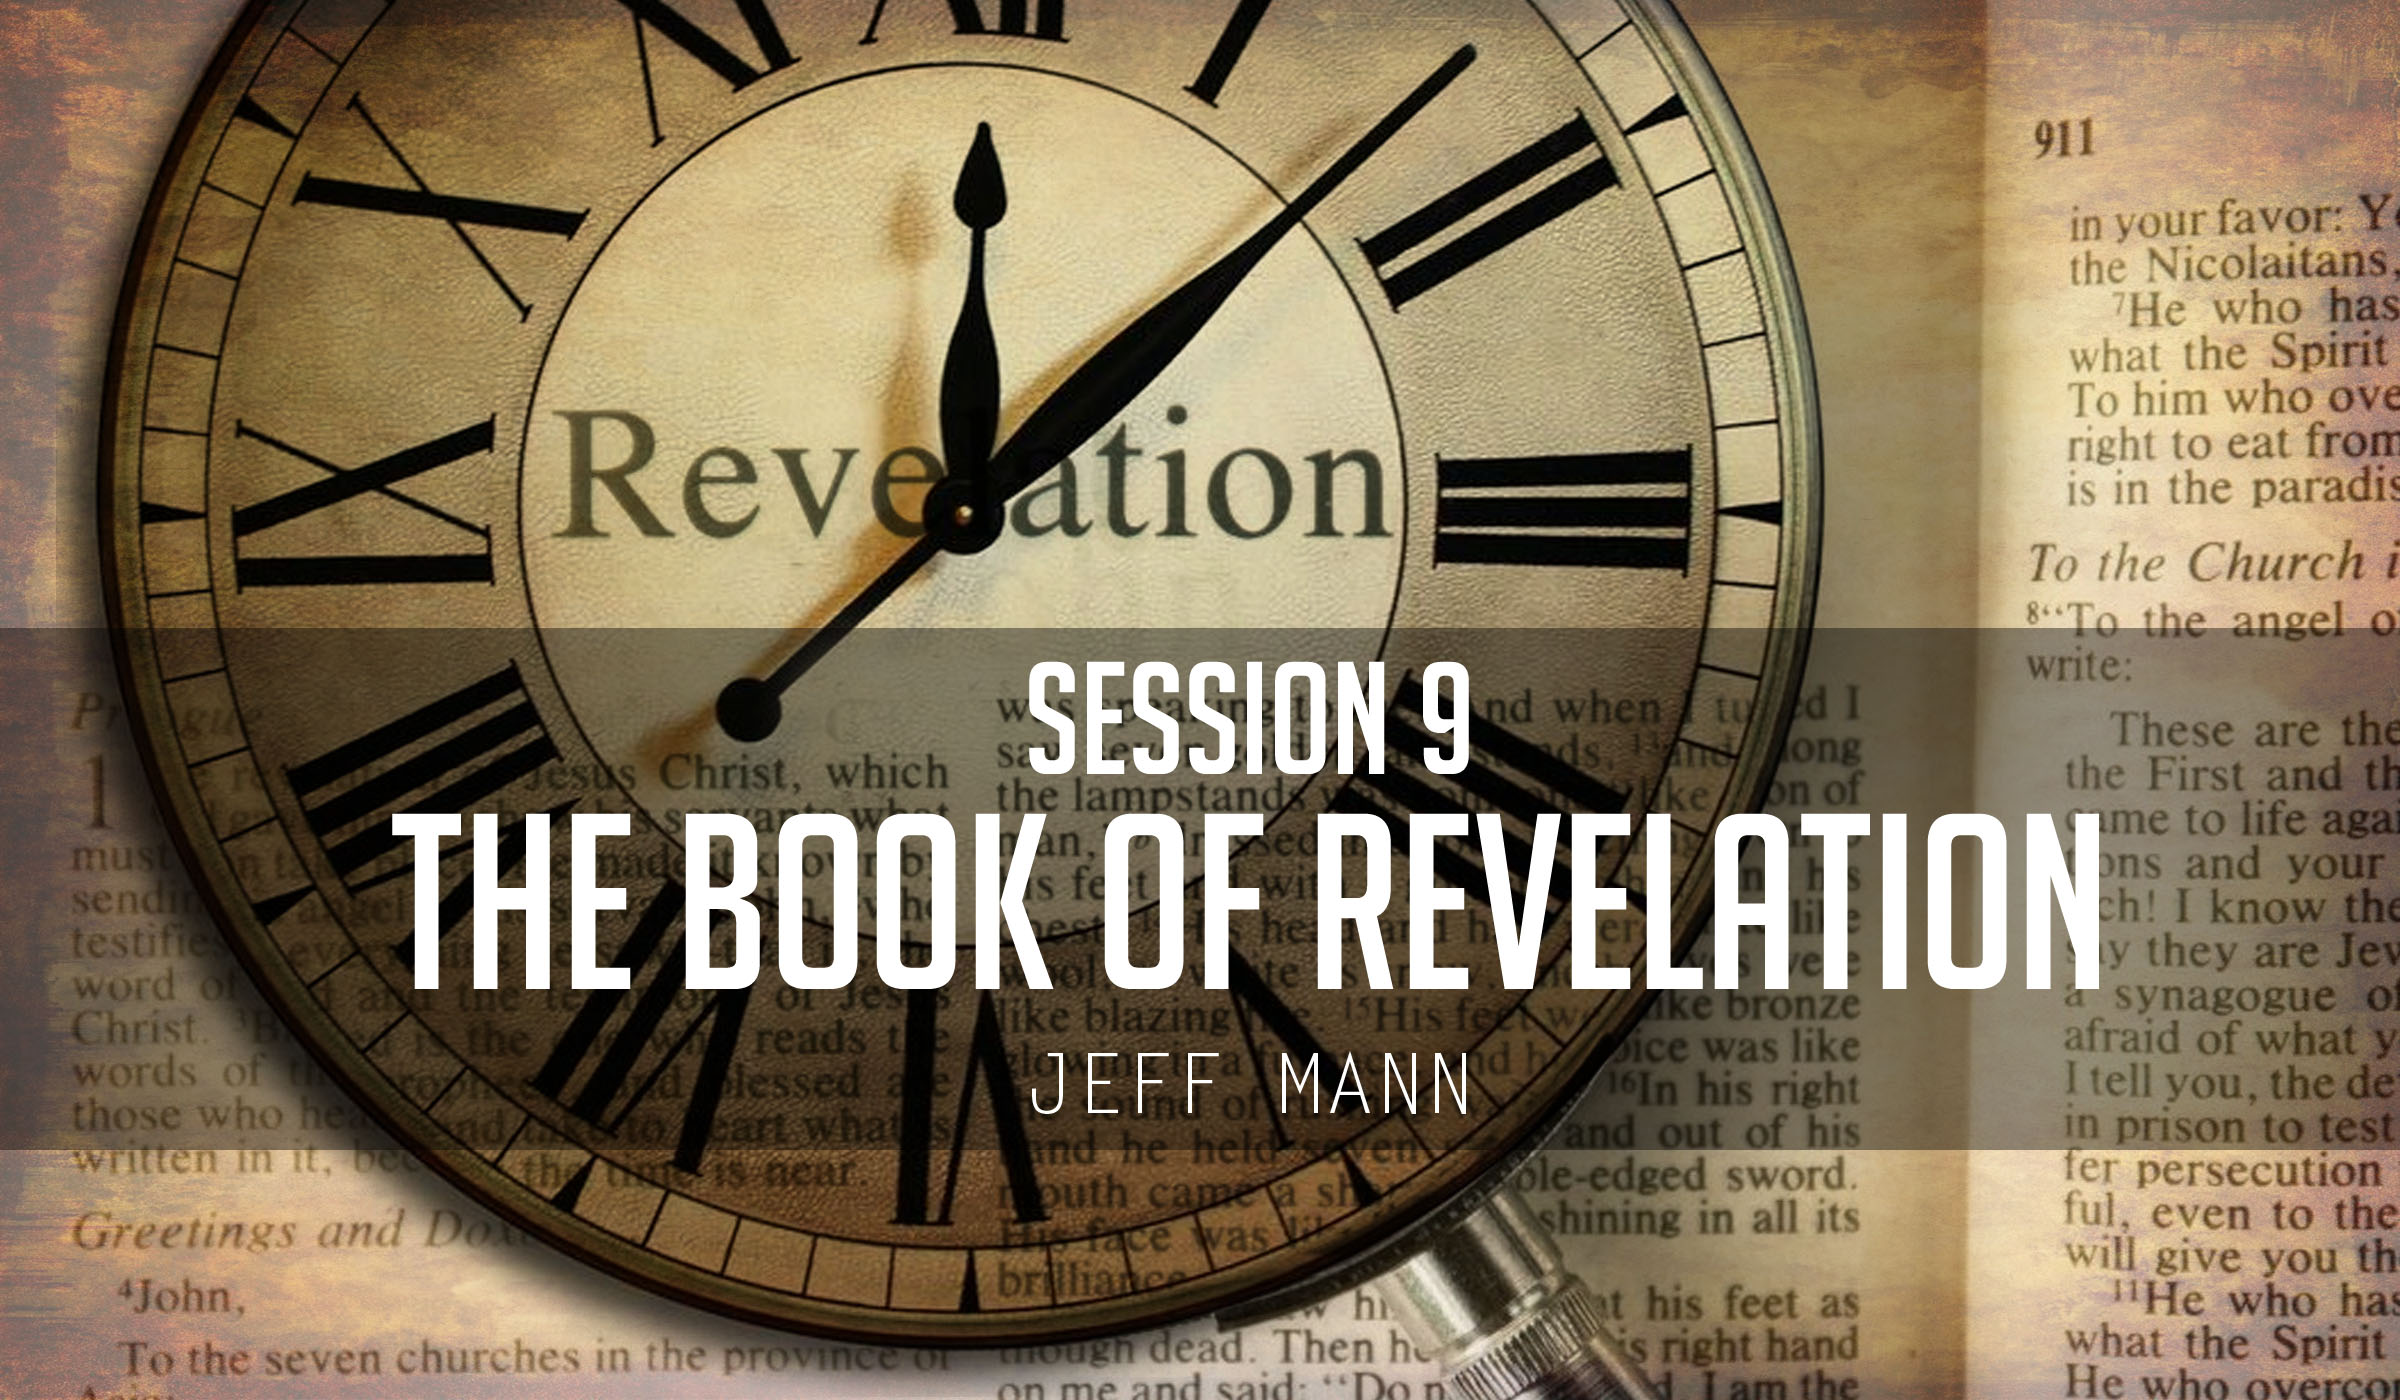 The Book of Revelation Session 9